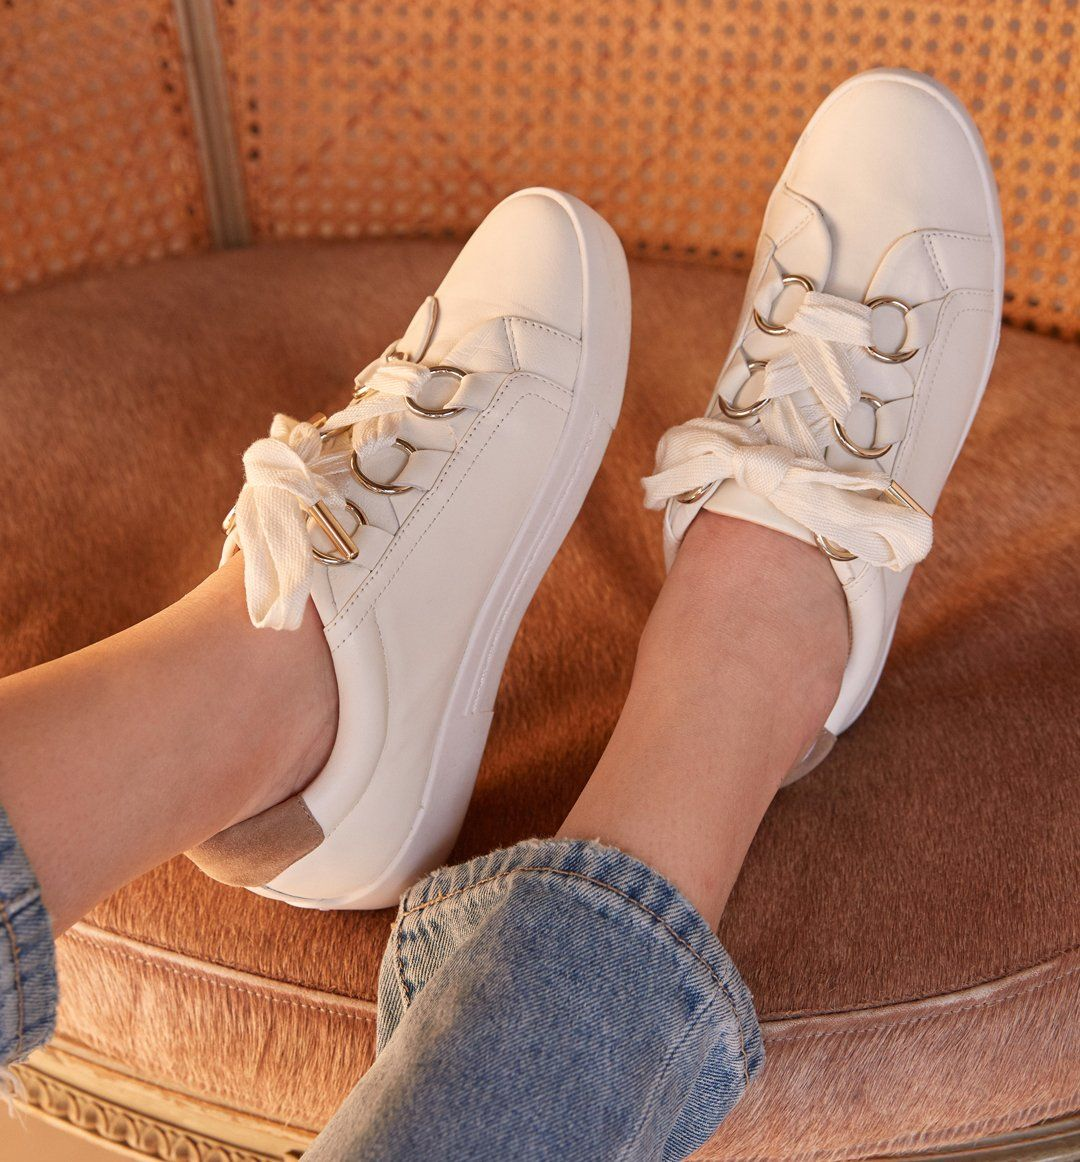 Joie Shoes, Sneakers, Shoes